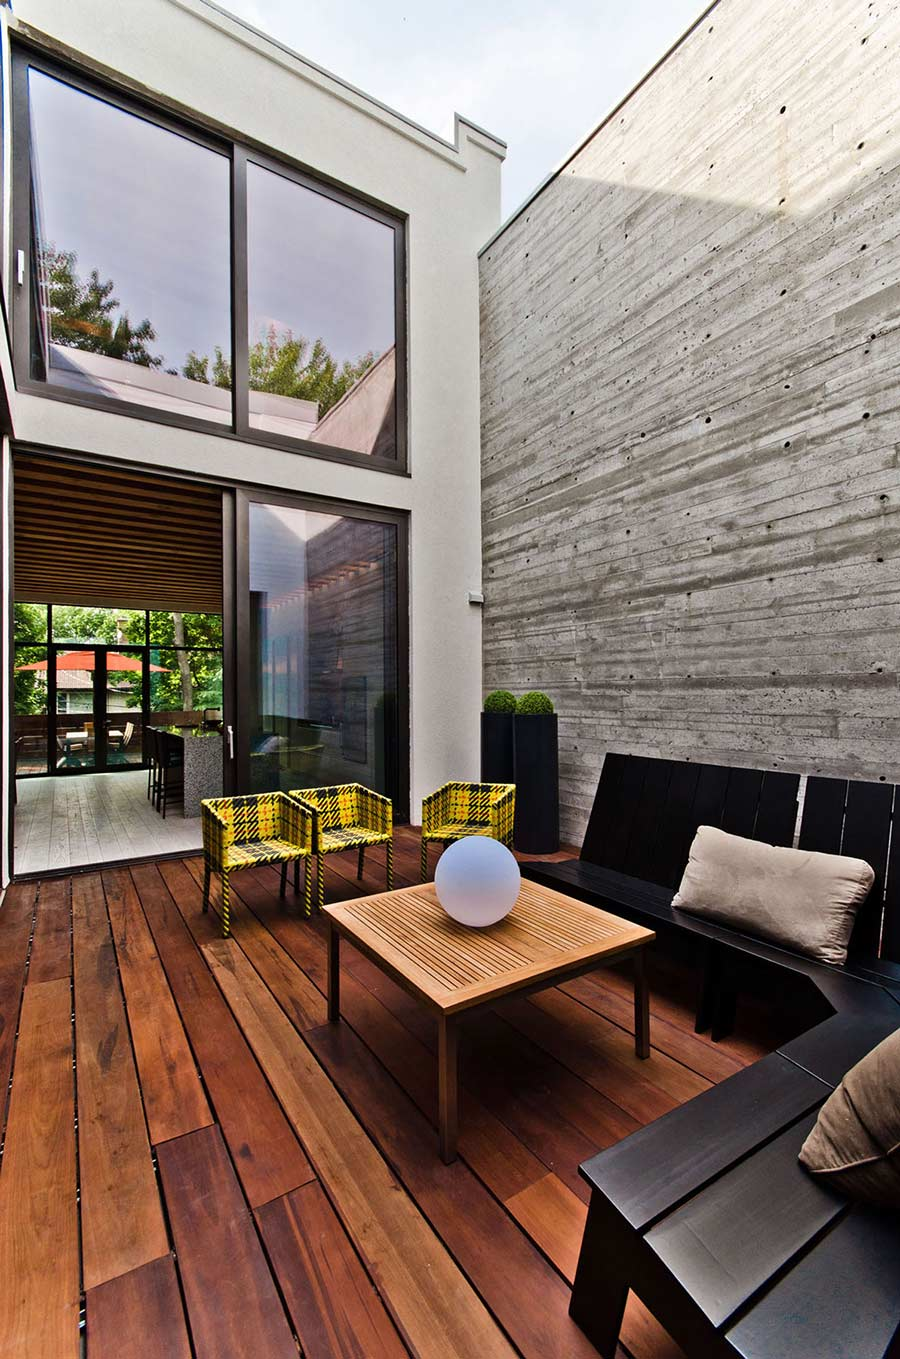 Courtyard, Wooden Floor, Concrete Wall, Ecologia Montreal by Gervais Fortin